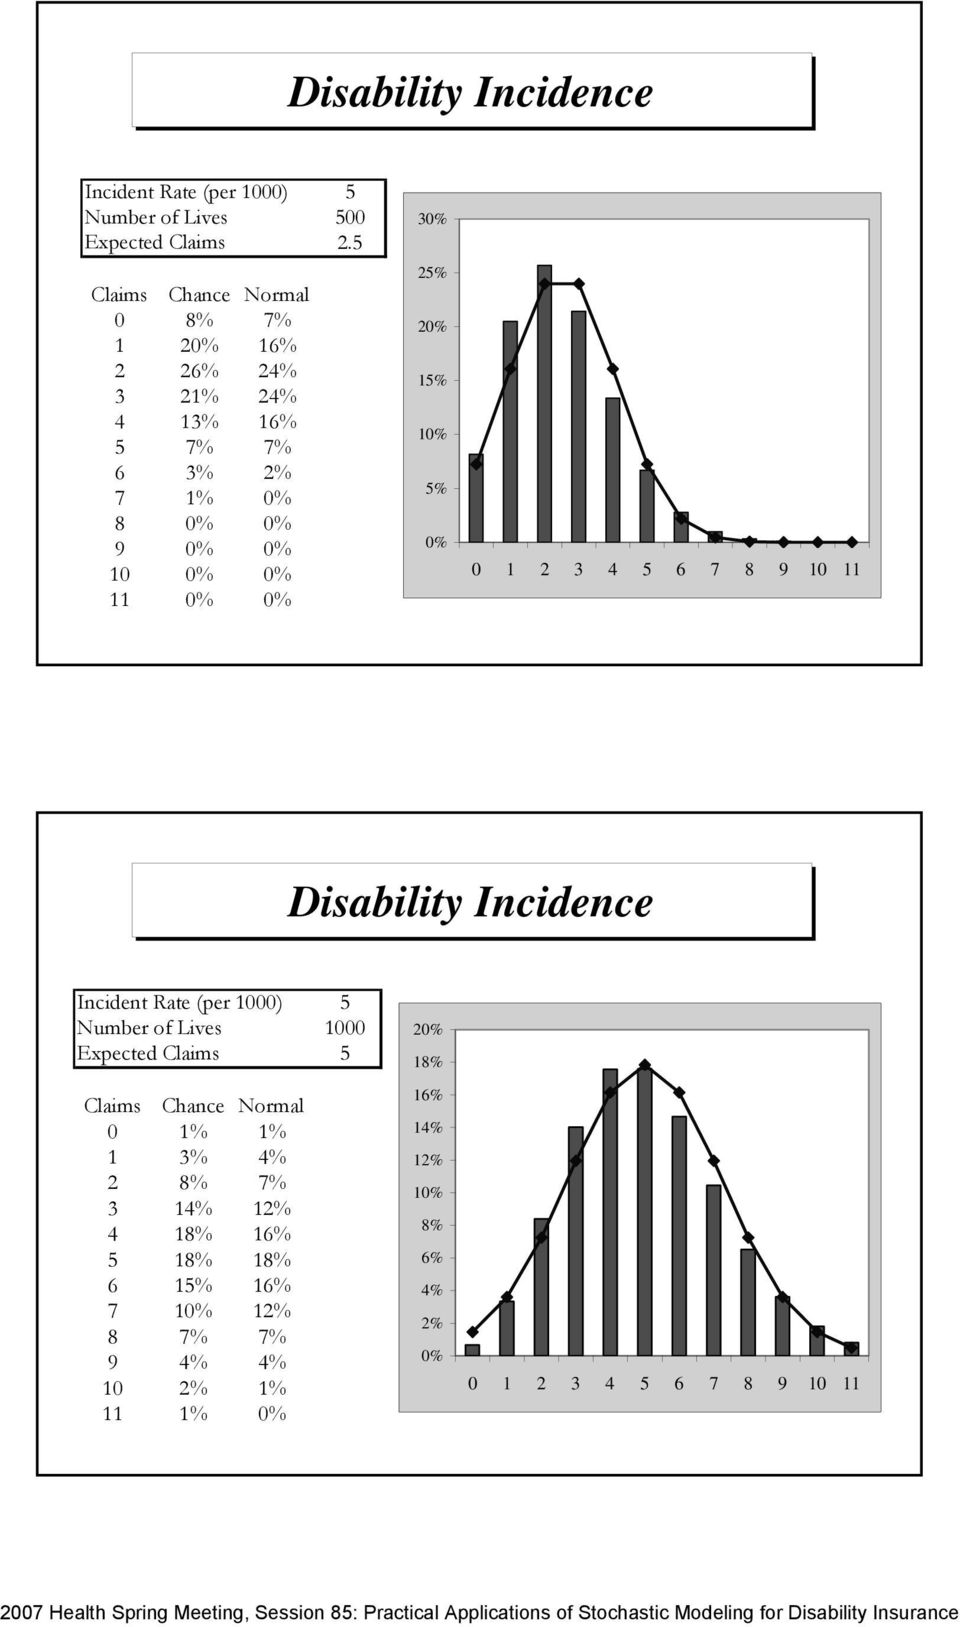 0% % 0% % 0% % 0% 0 6 7 8 9 0 Disability Incidence Incident Rate (per 000) Number of Lives Expected